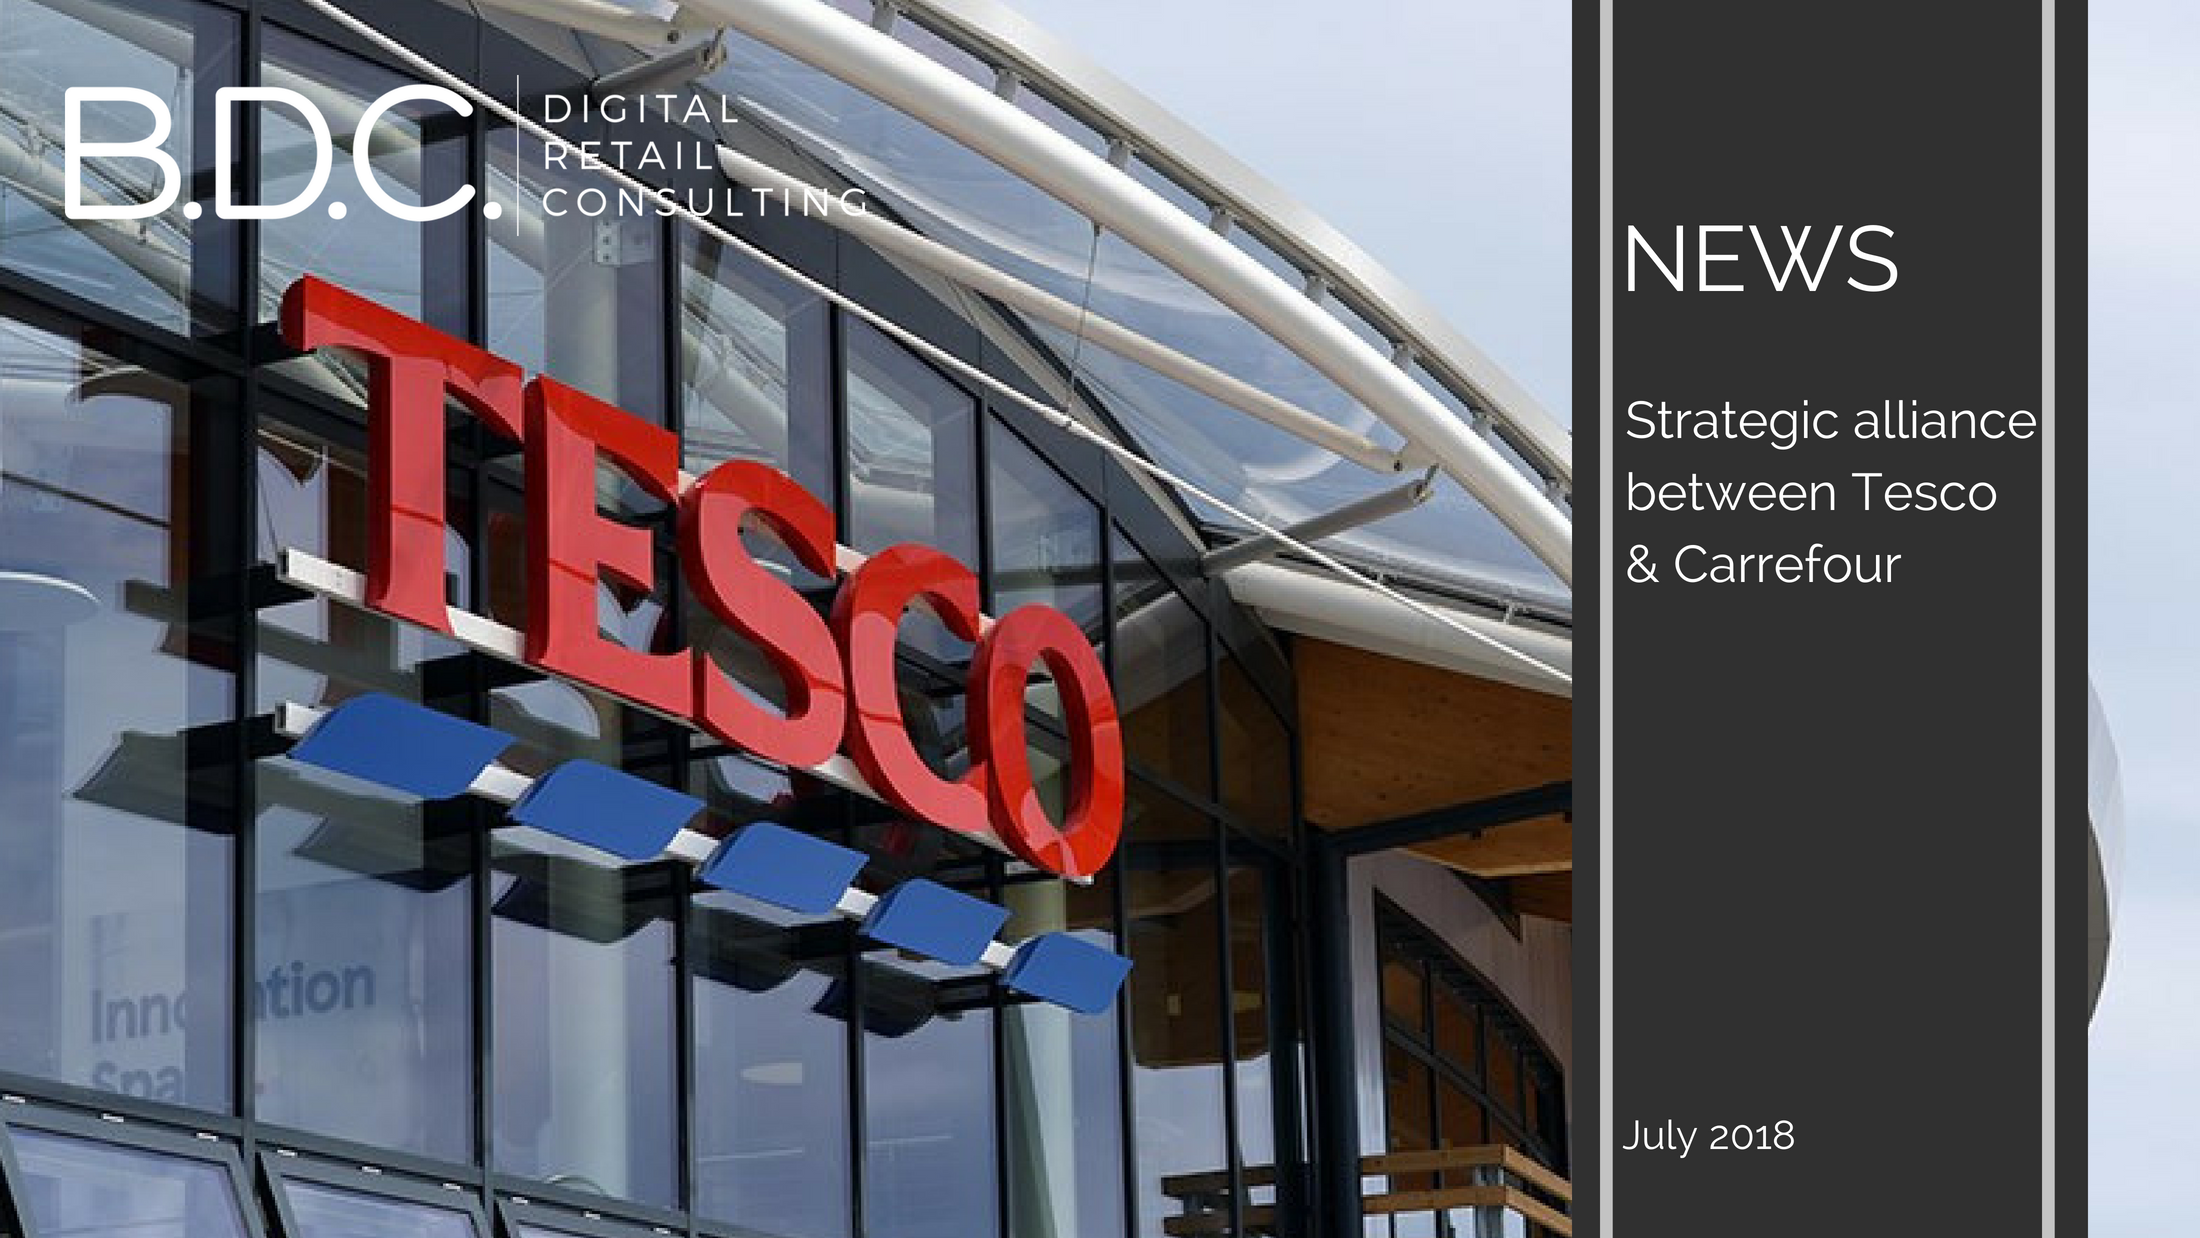 Trends News 41 - Strategic alliance between Tesco & Carrefour